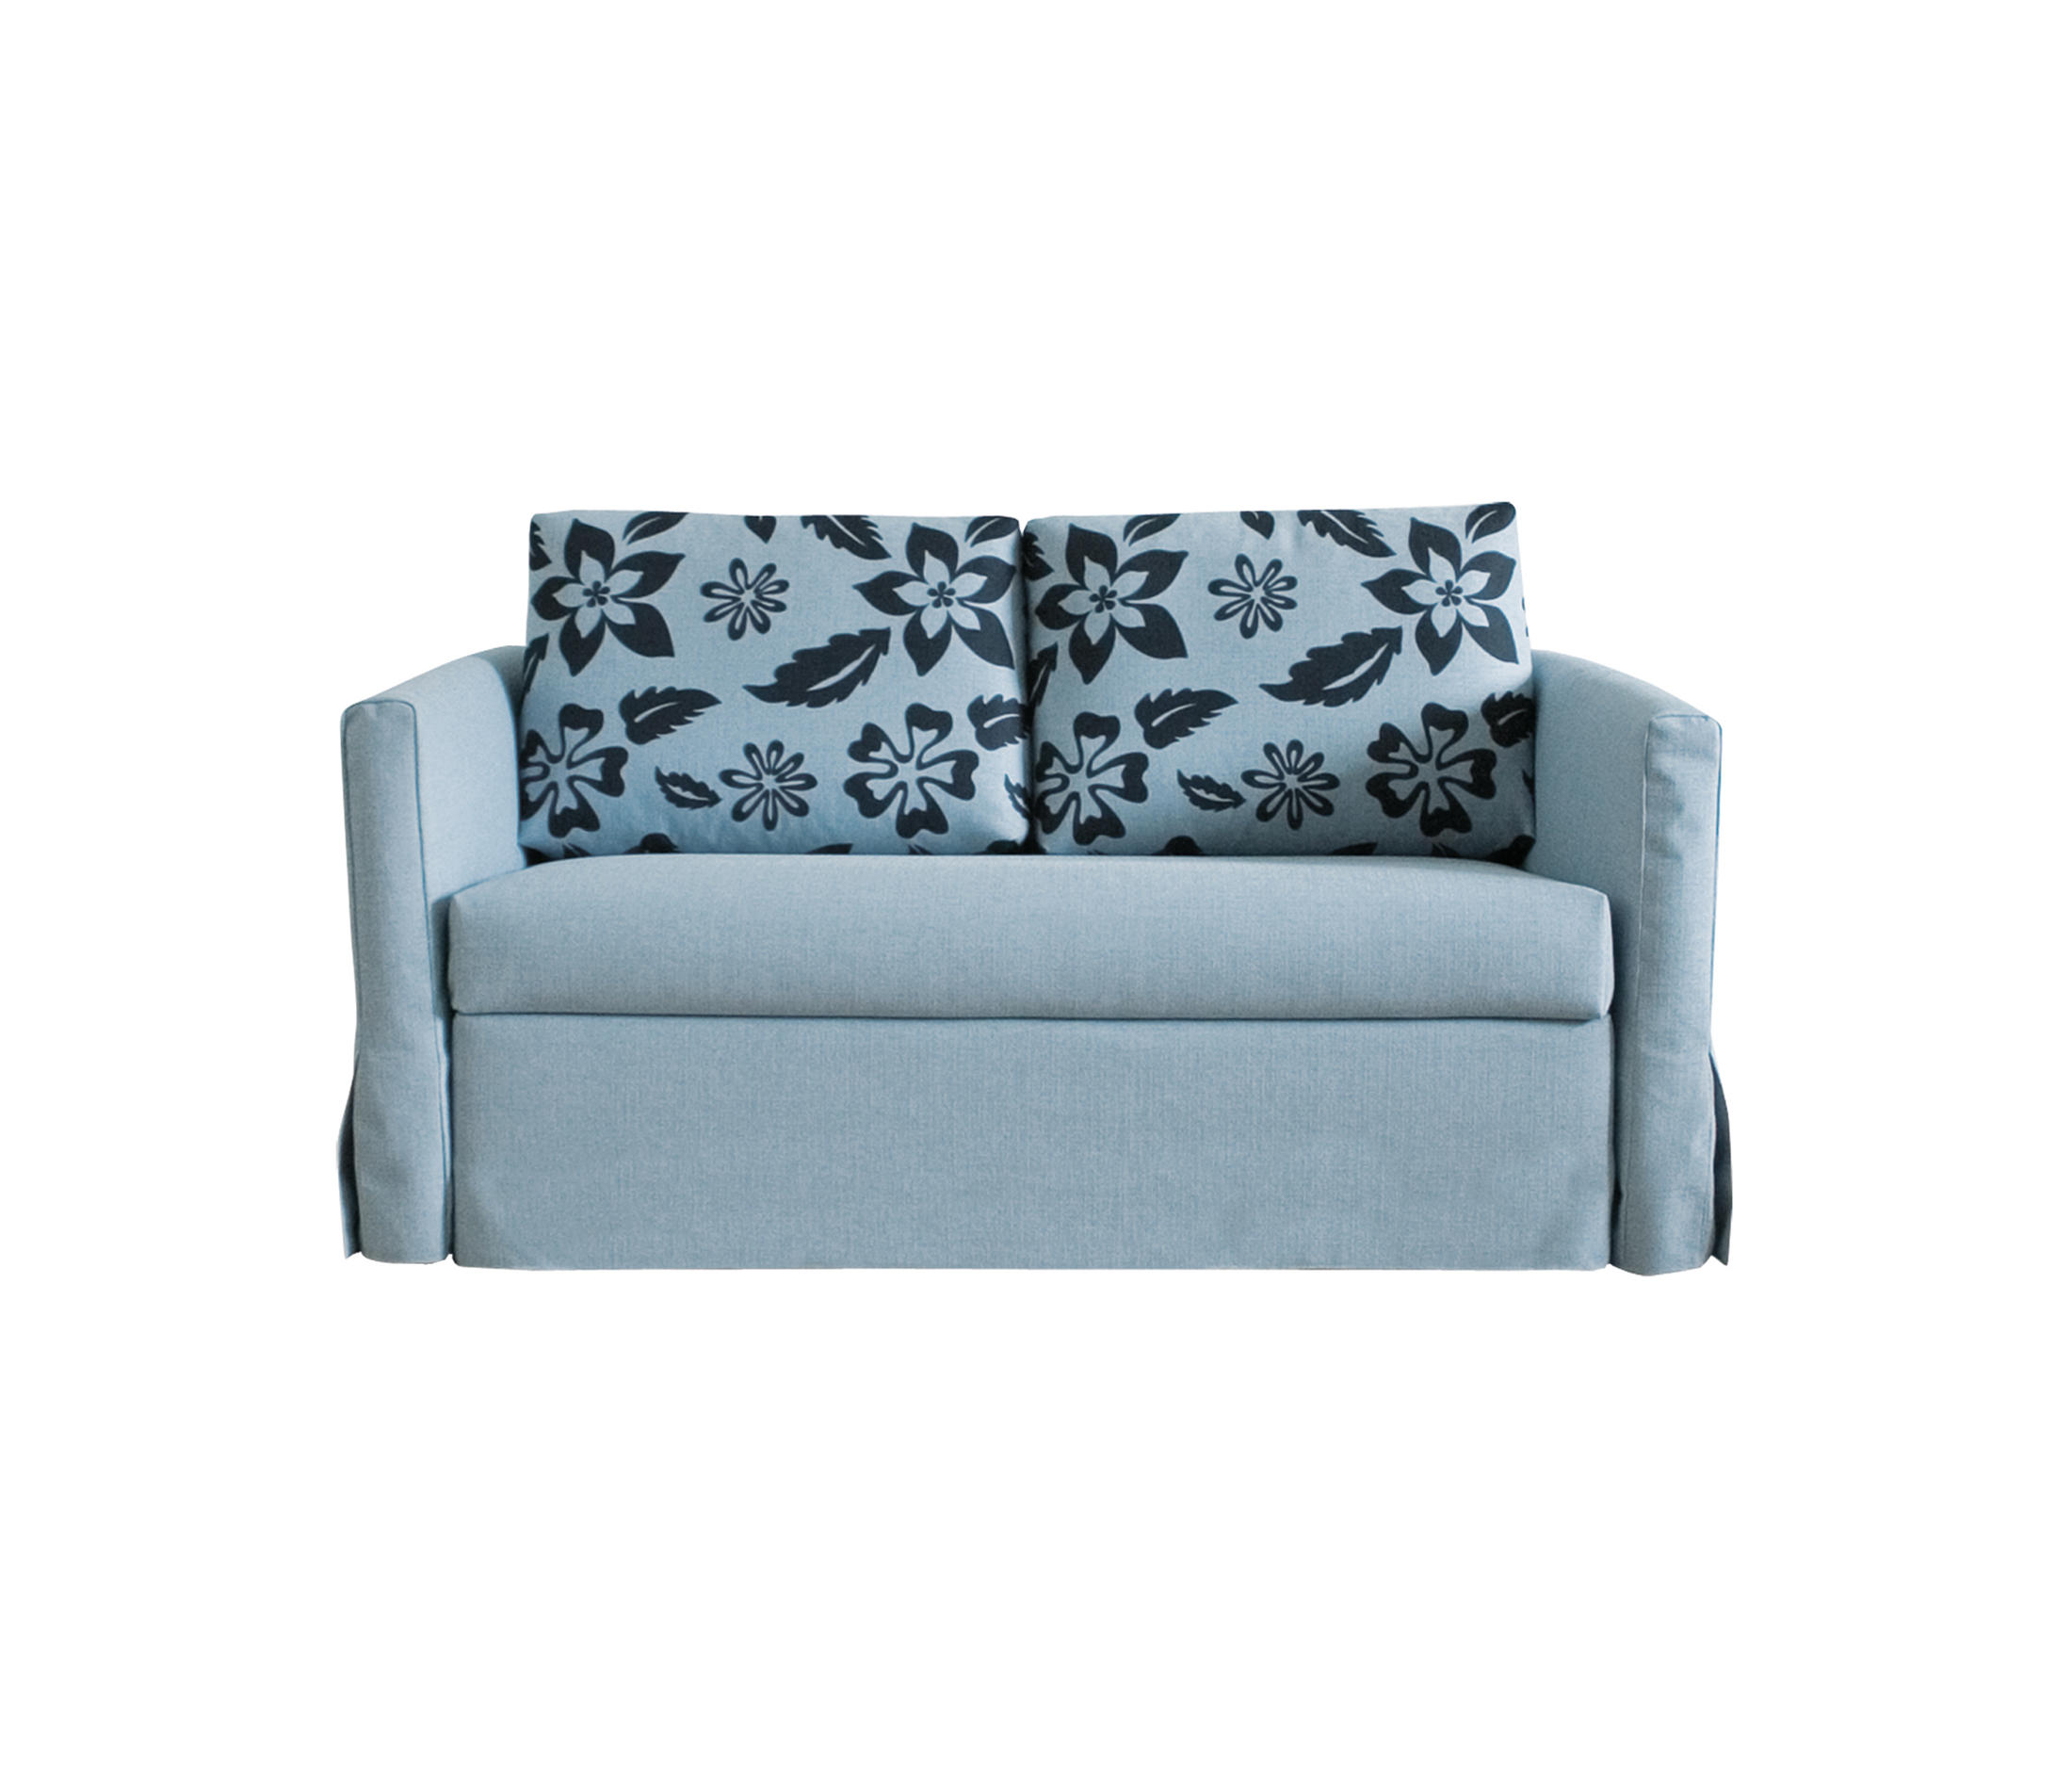 Bettsofa Vela Vela Bettsofa Schlafsofas Von Die Collection Architonic